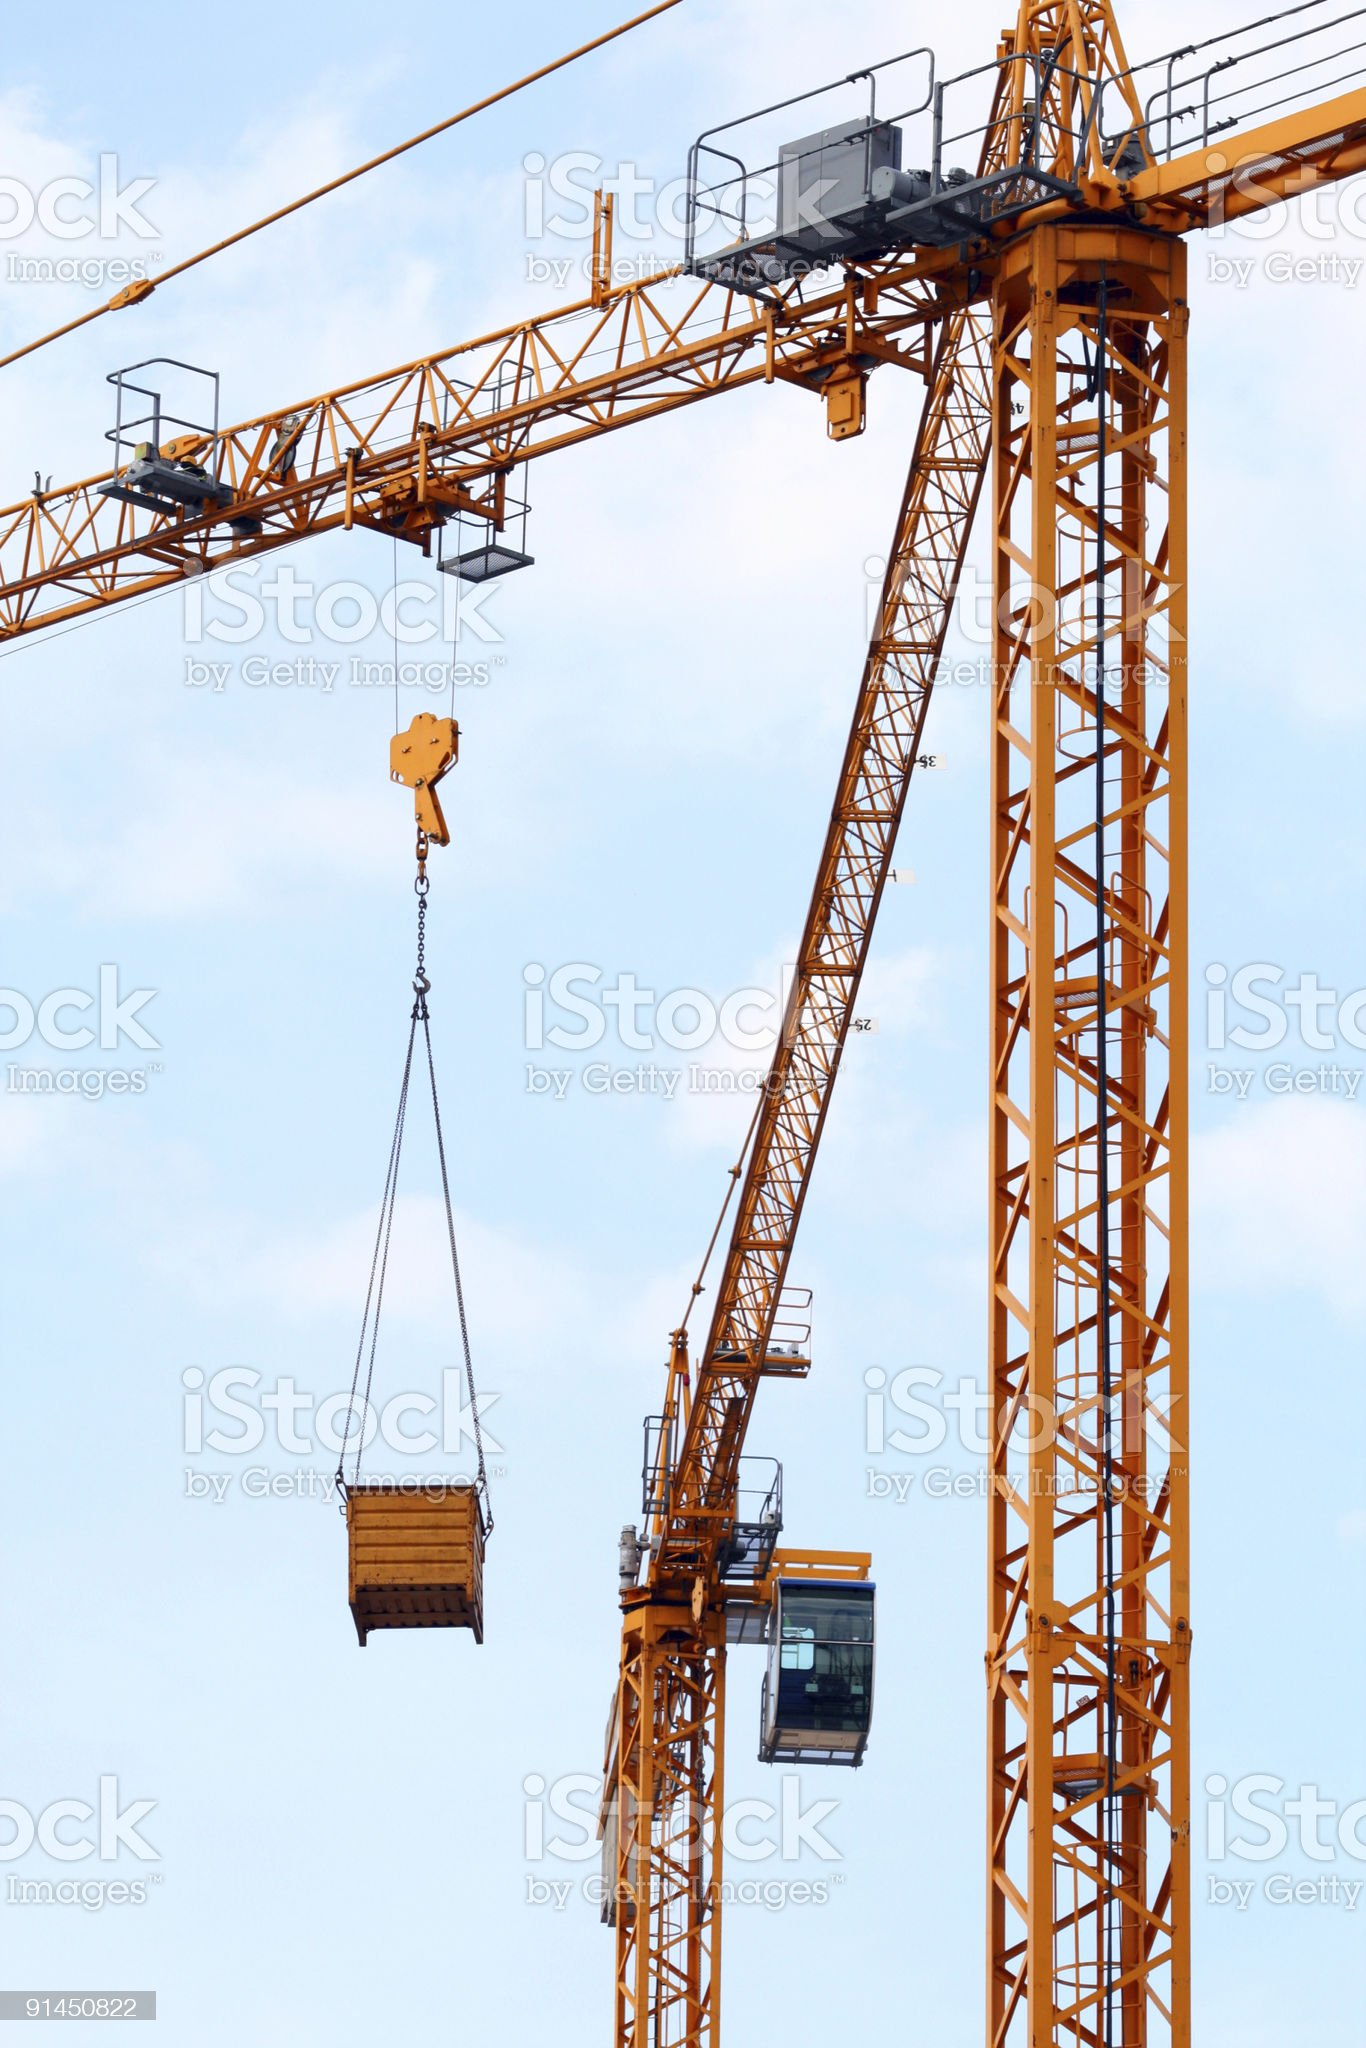 Cranes at the construction site royalty-free stock photo